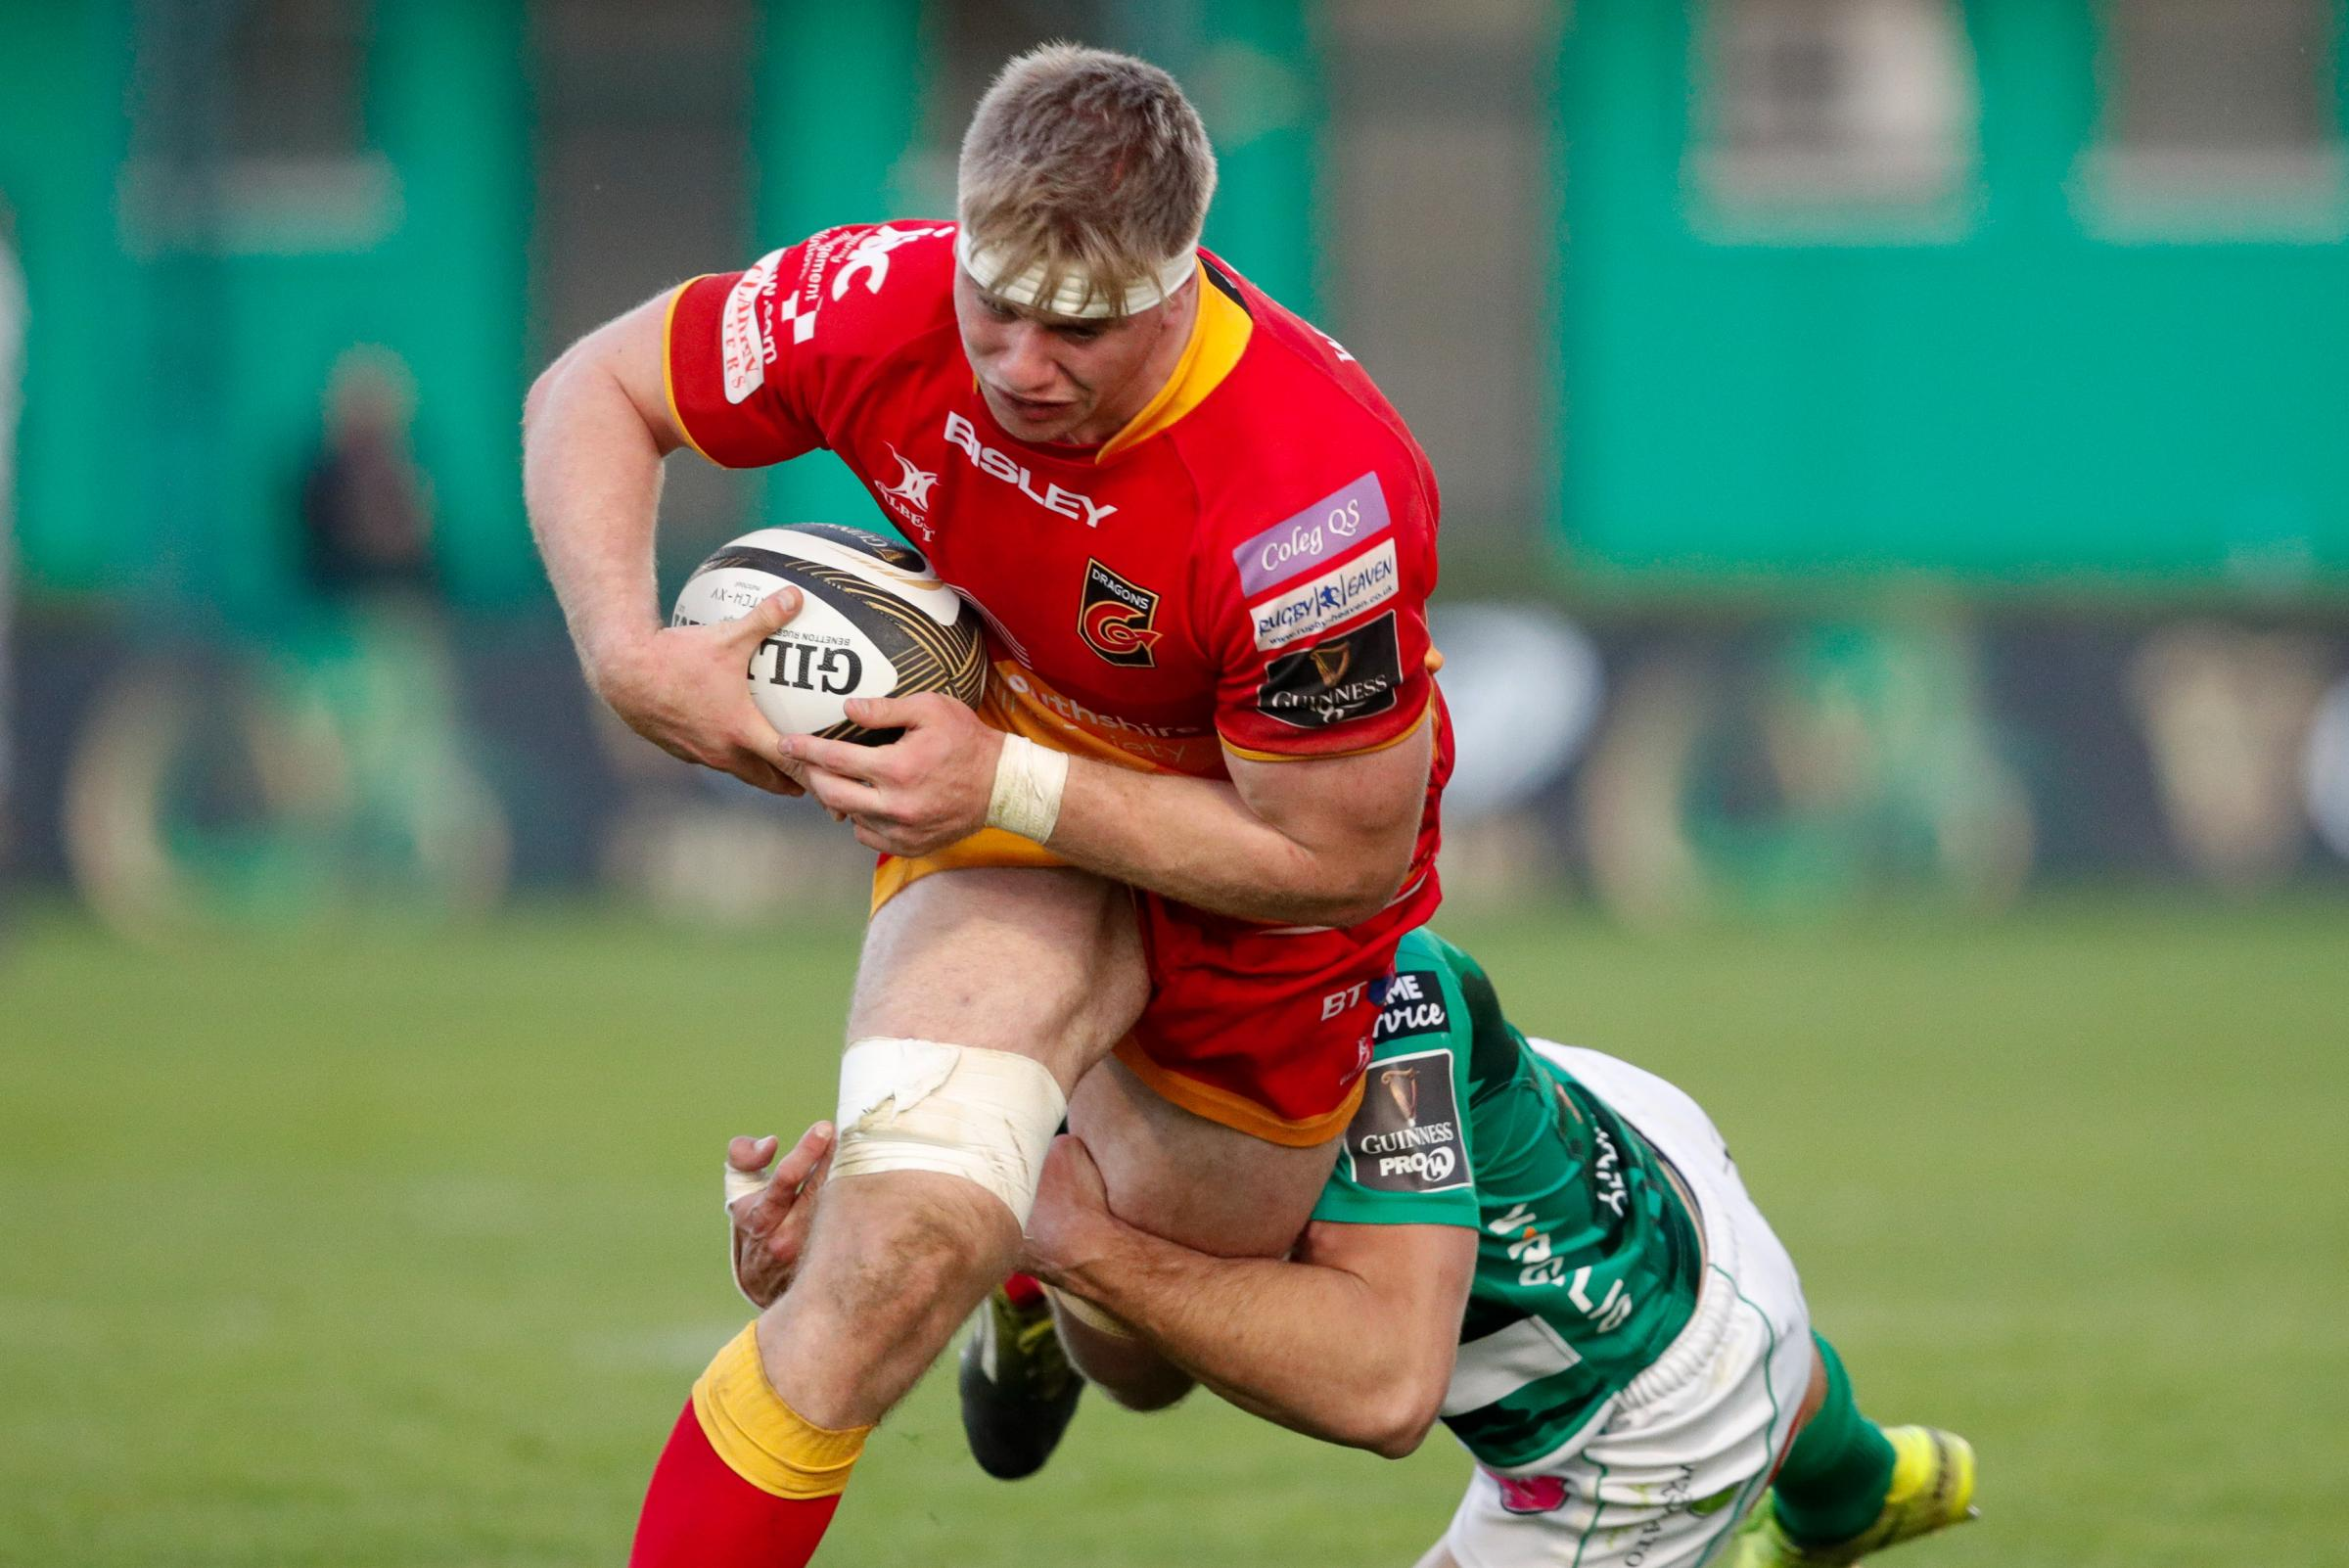 Wales call for Dragons duo Hewitt and Wainwright